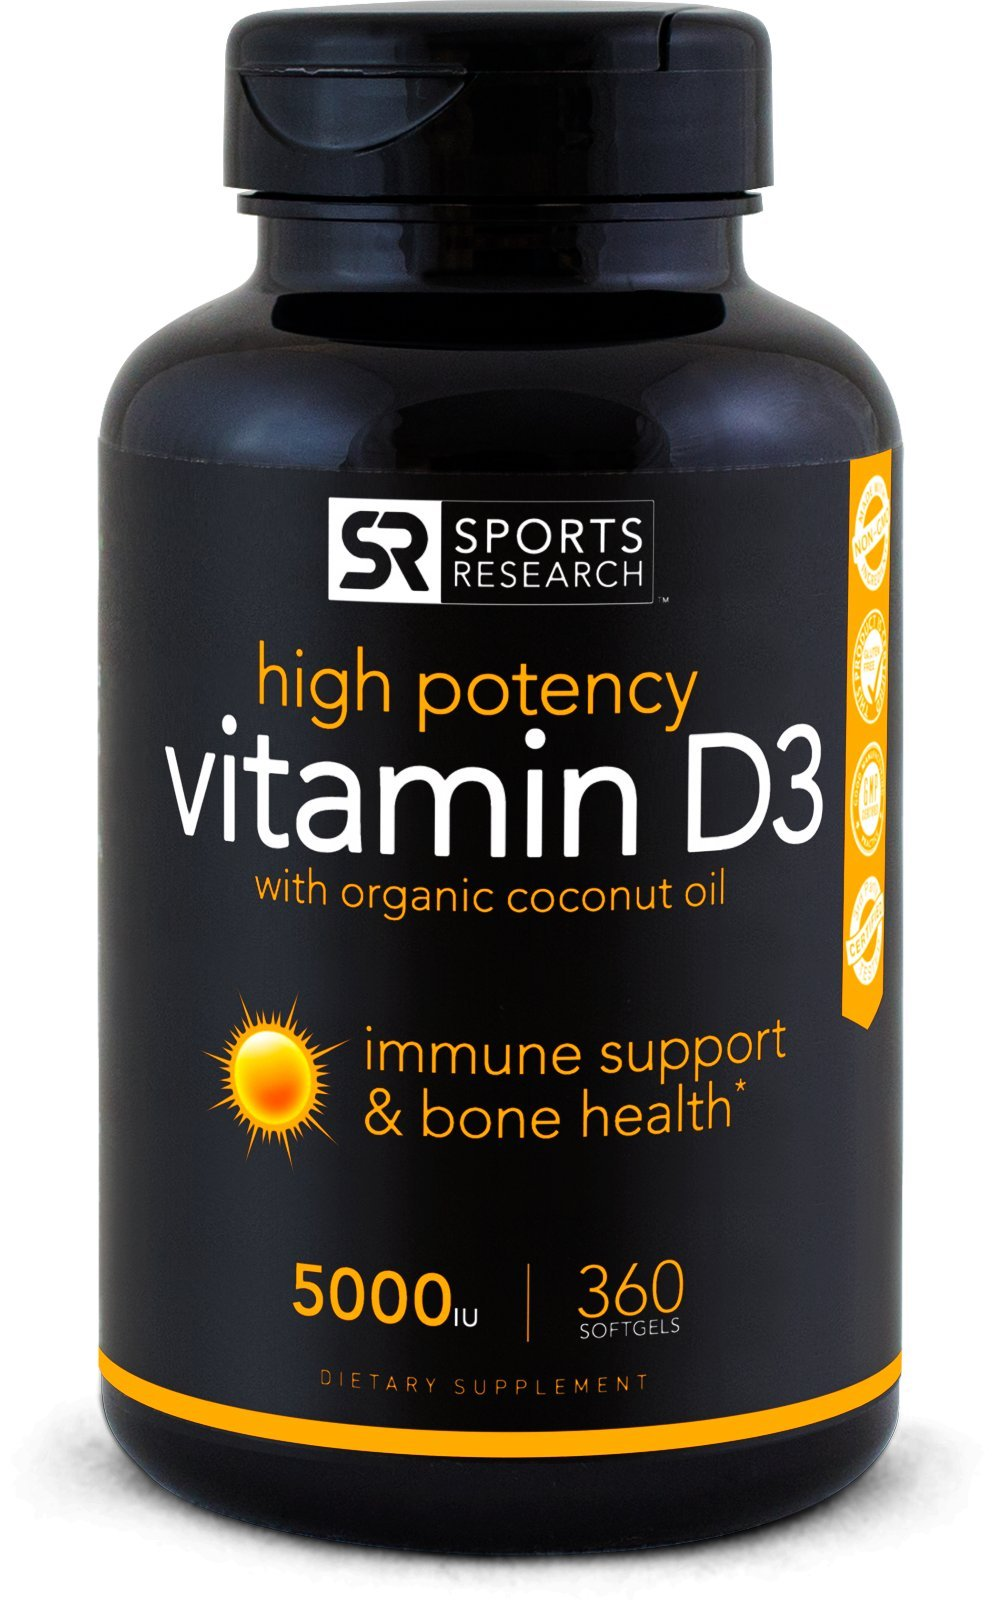 High Potency Vitamin D3 (5000iu) enhanced with Coconut Oil for Better Absorption ~ Bone, Joint and Immune system support ~ Non-GMO & Gluten Free, 360 Mini Liquid Softgels